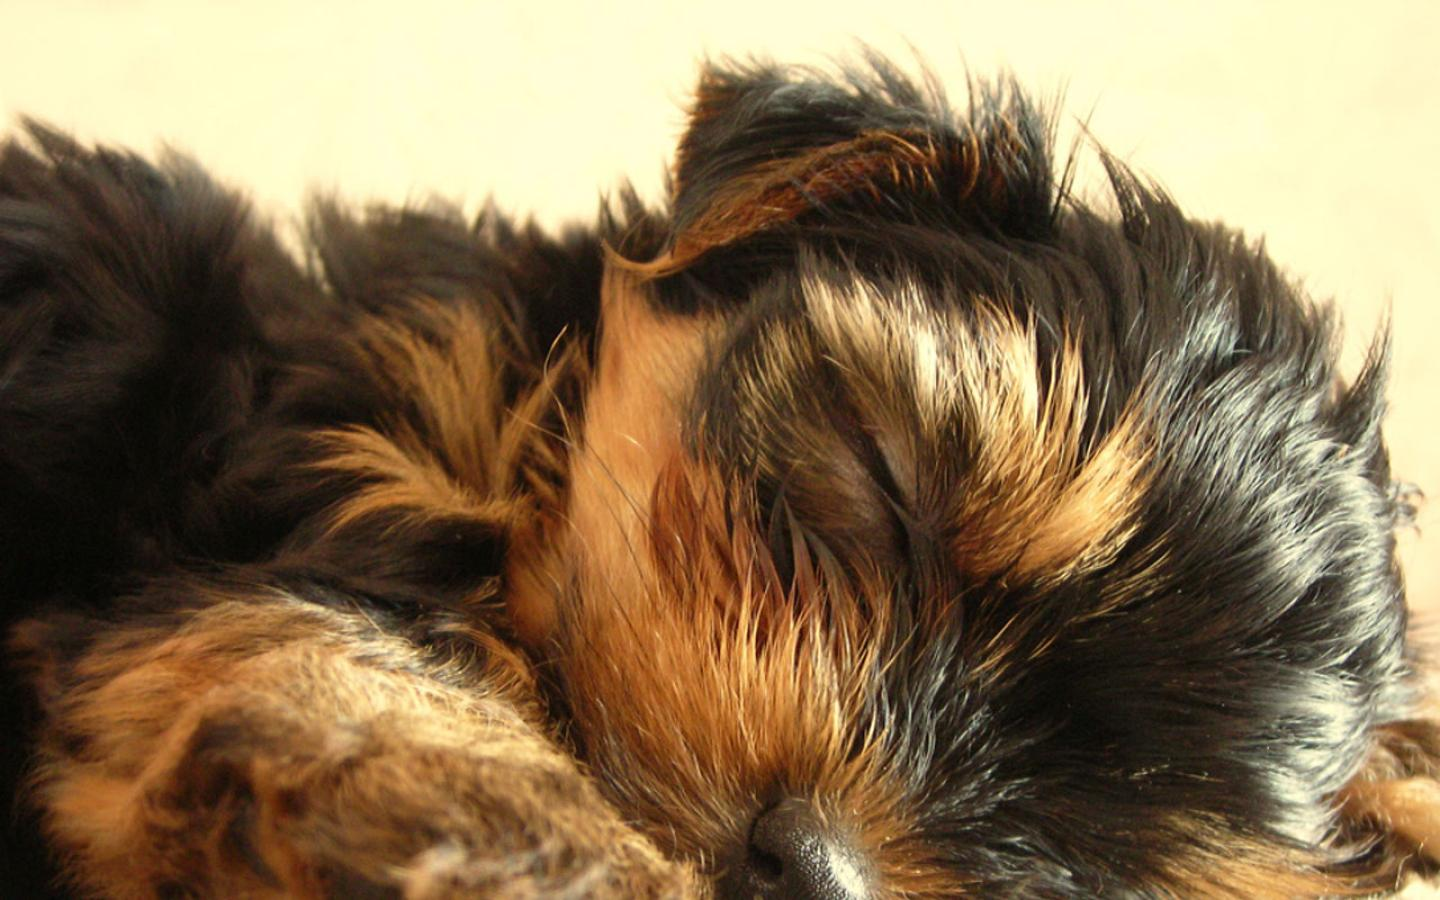 Yorkshire Terrier - Puppy having a Snooze Wallpaper #4 1440 x 900